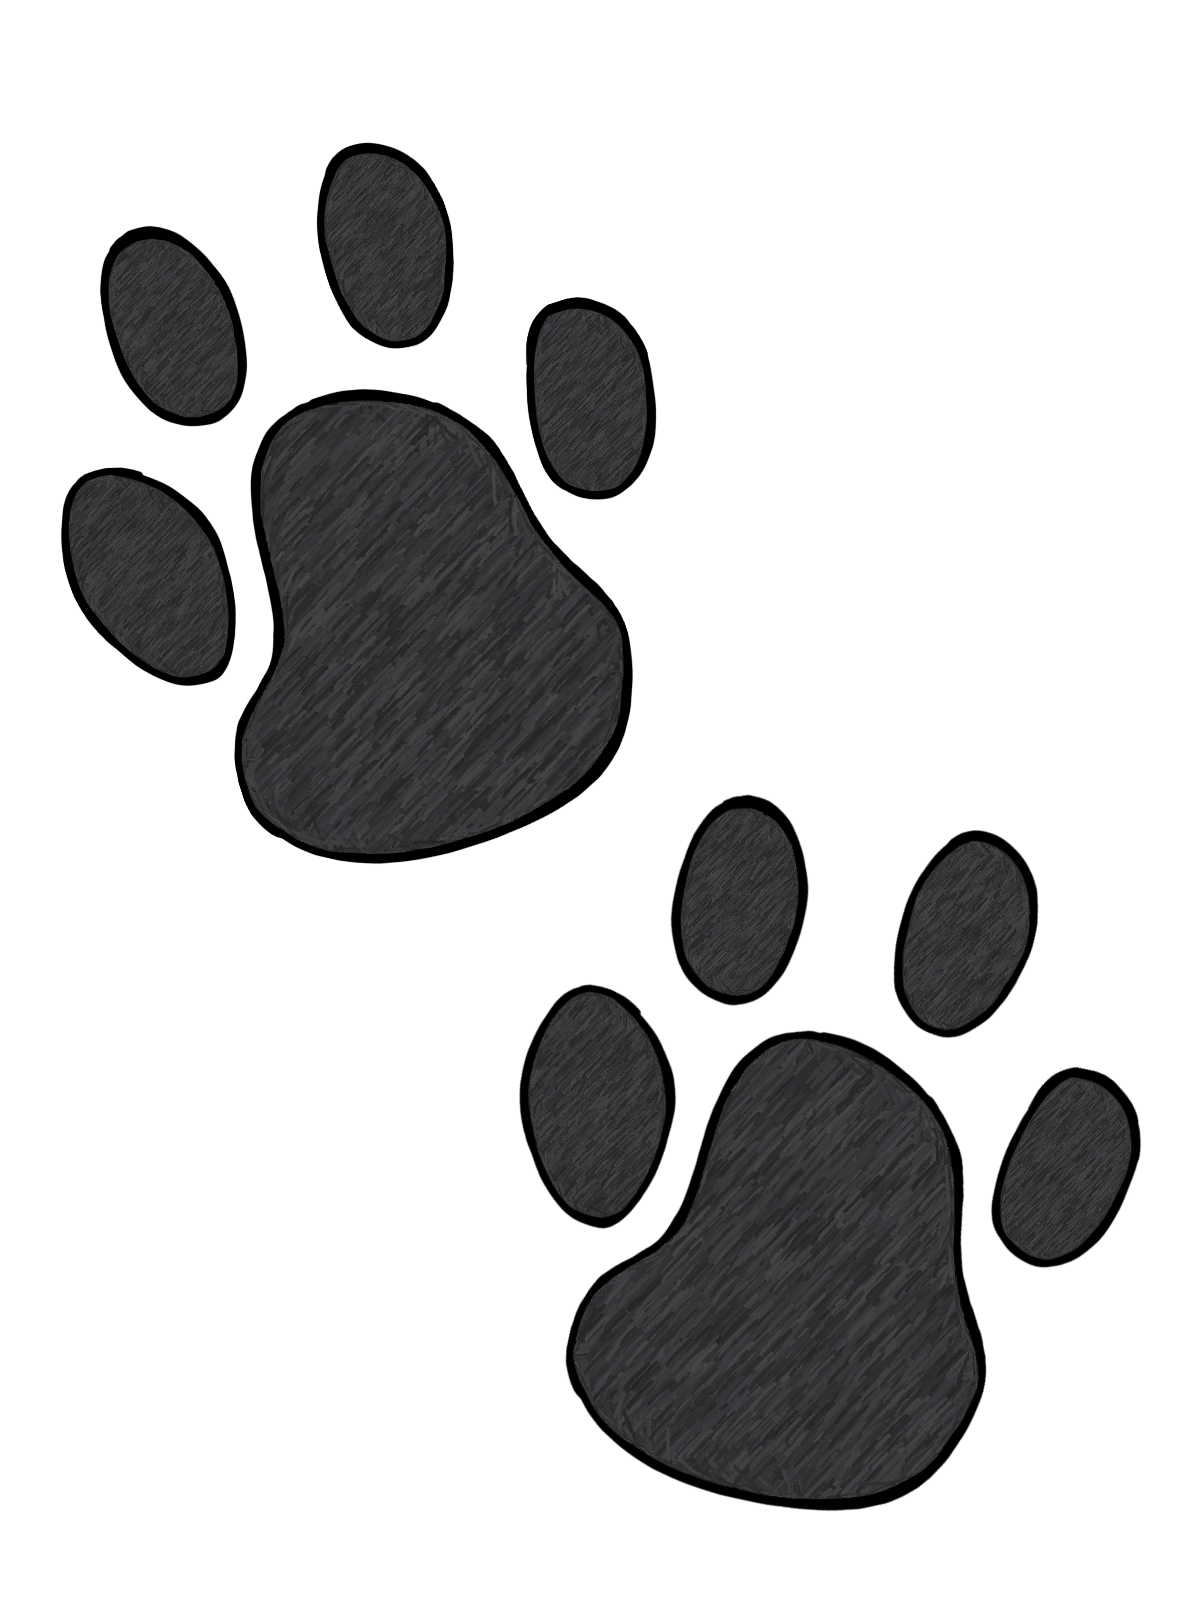 Footprints clipart panther. Free image paw print